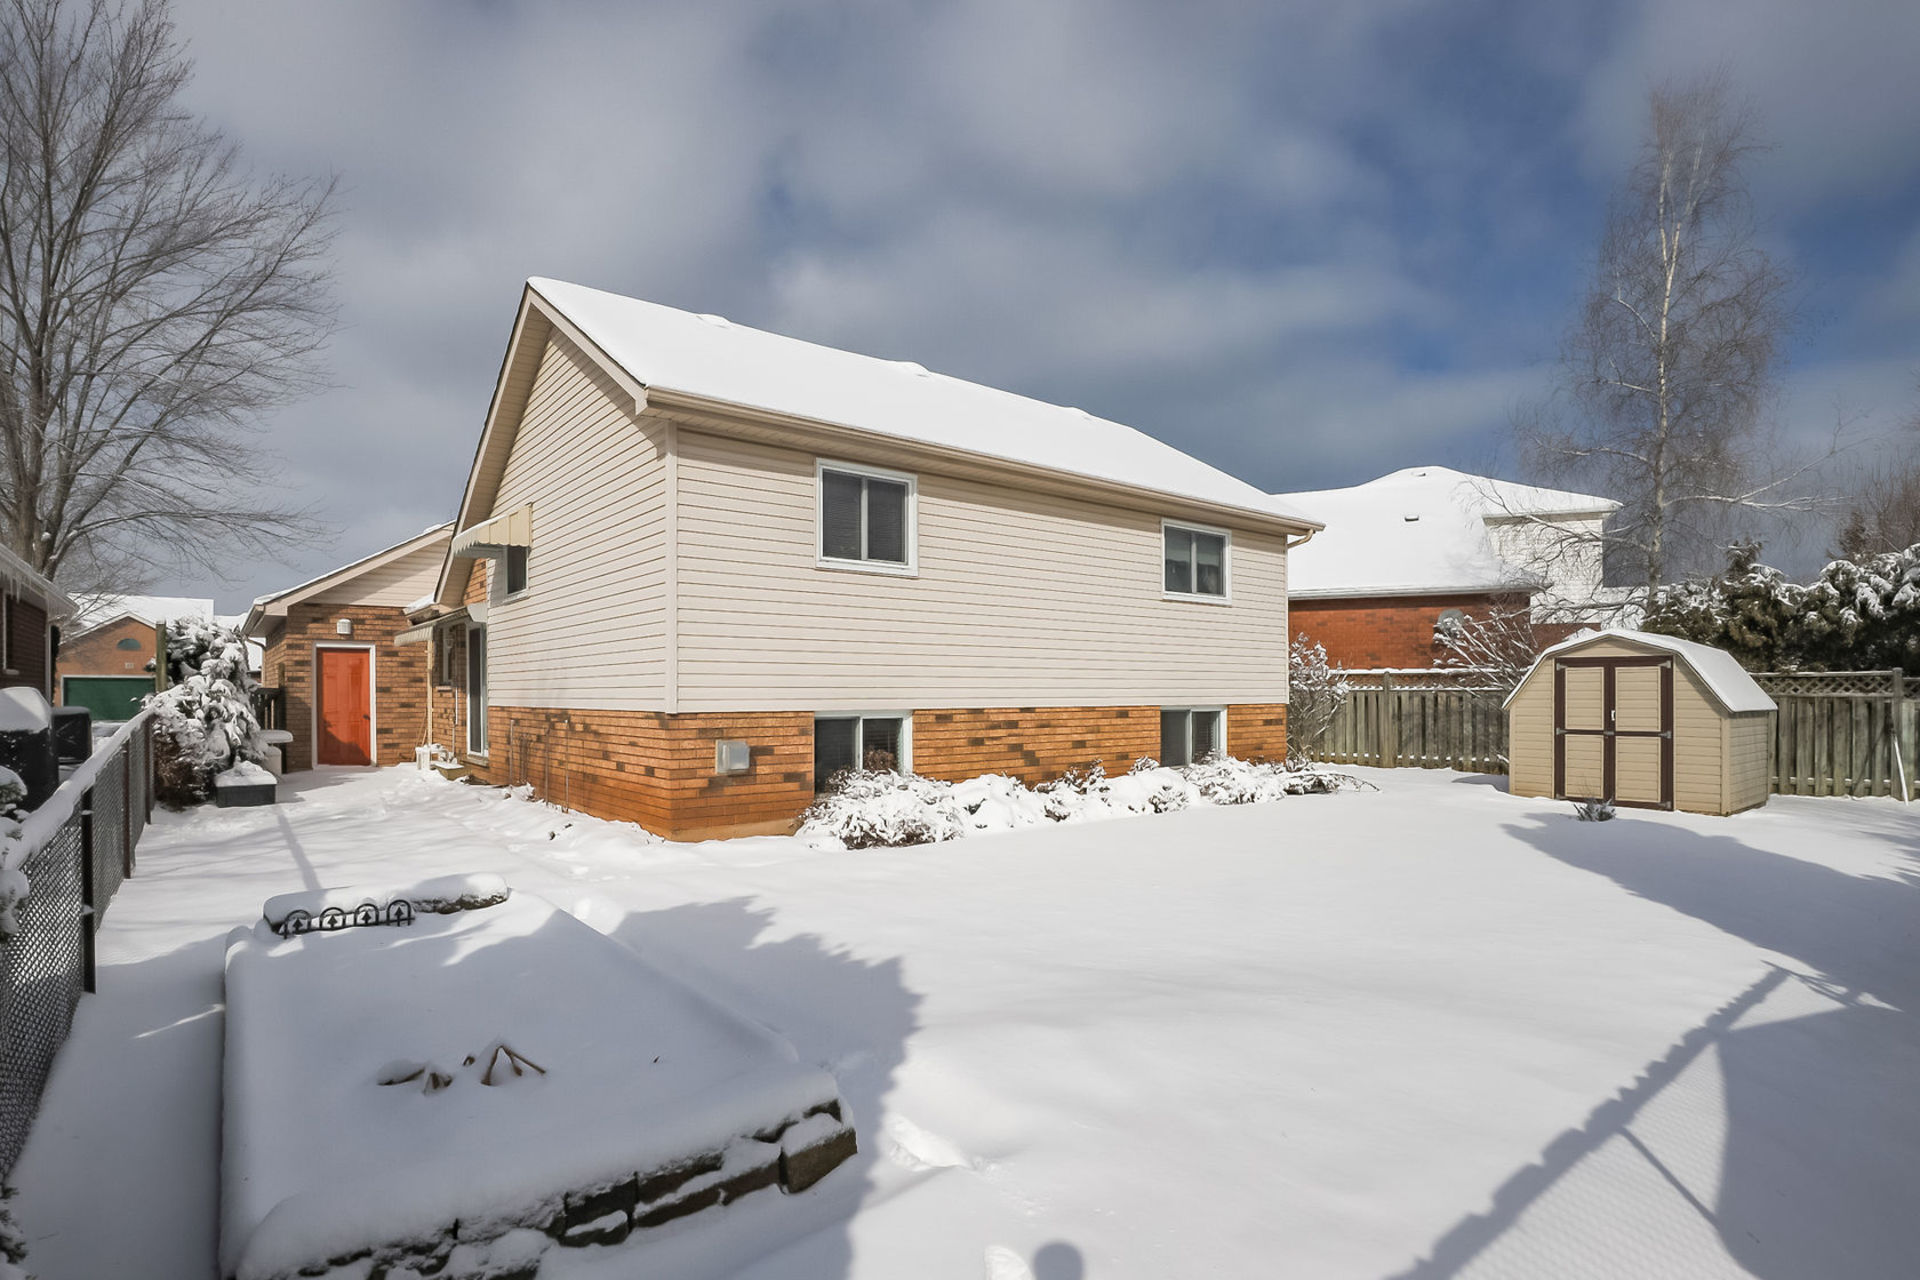 virtual-tour-292122-45 at 47 Colonial Cresent, Grimsby